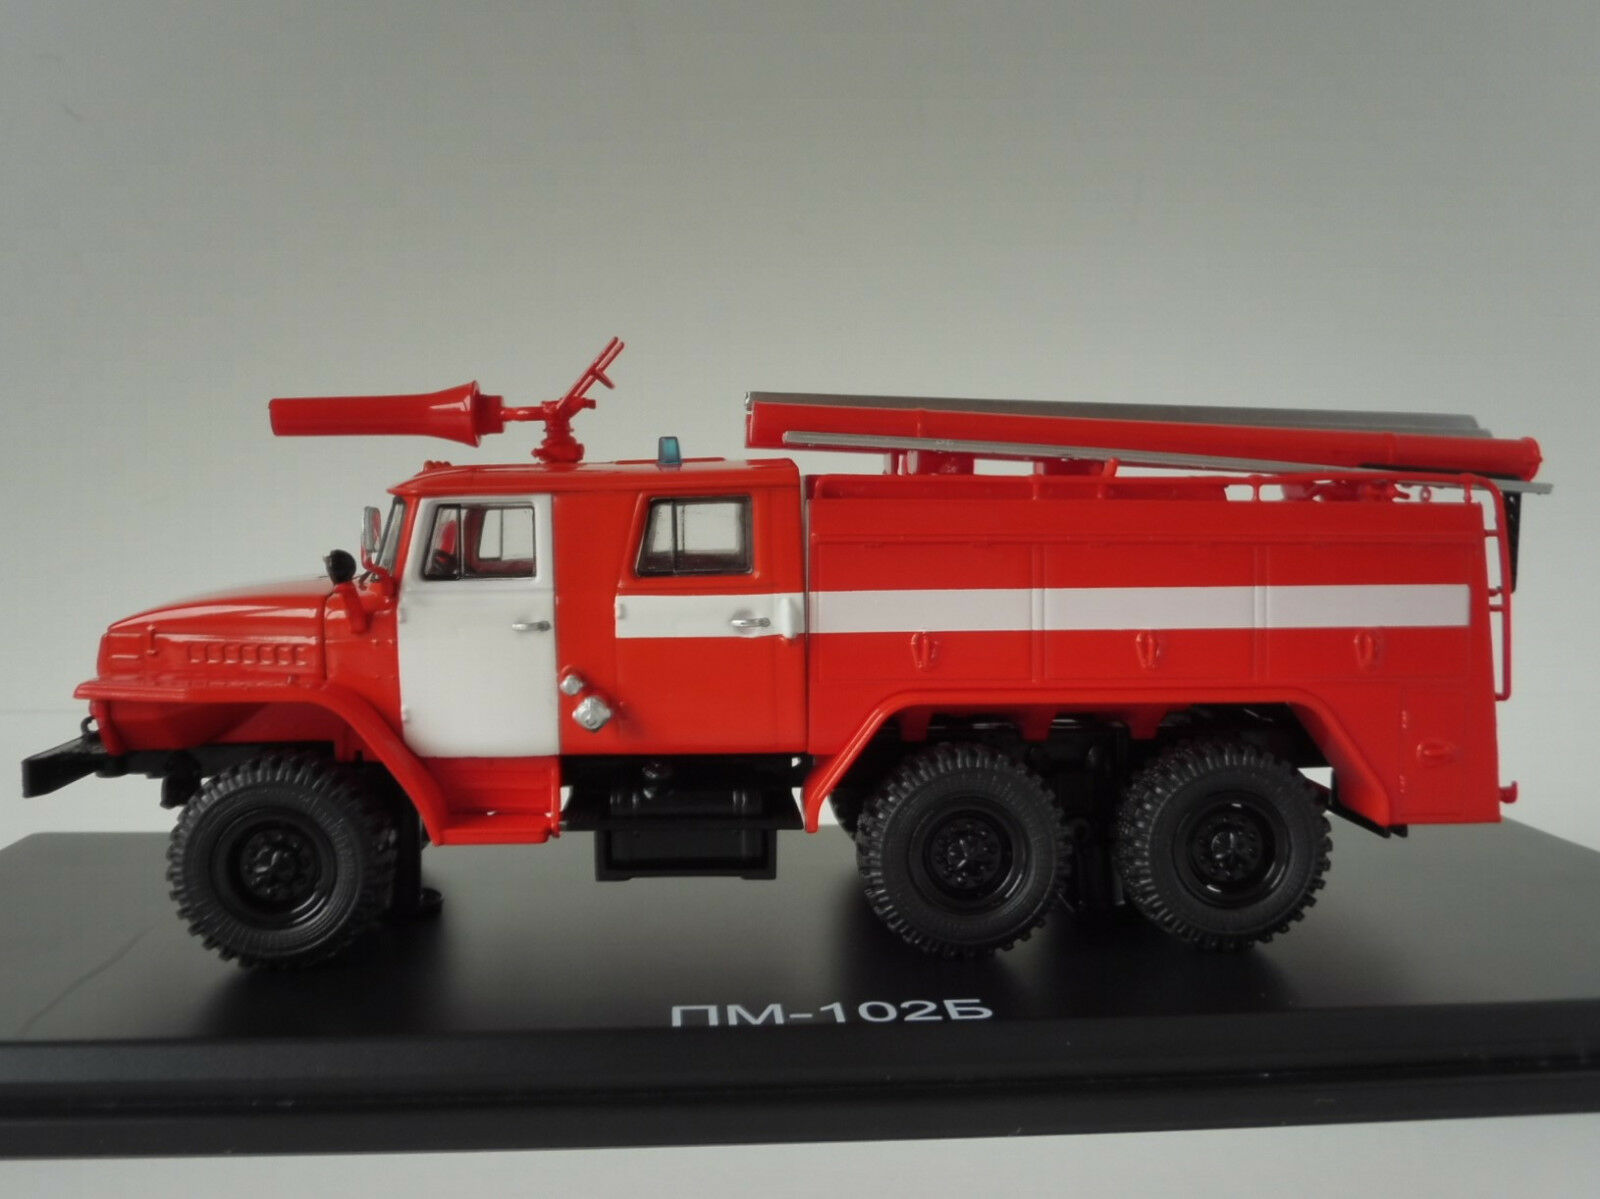 Ural ac-40 43202 pm-102b POMPIERI 1/43 start scale models ssm1232 Fire Engine